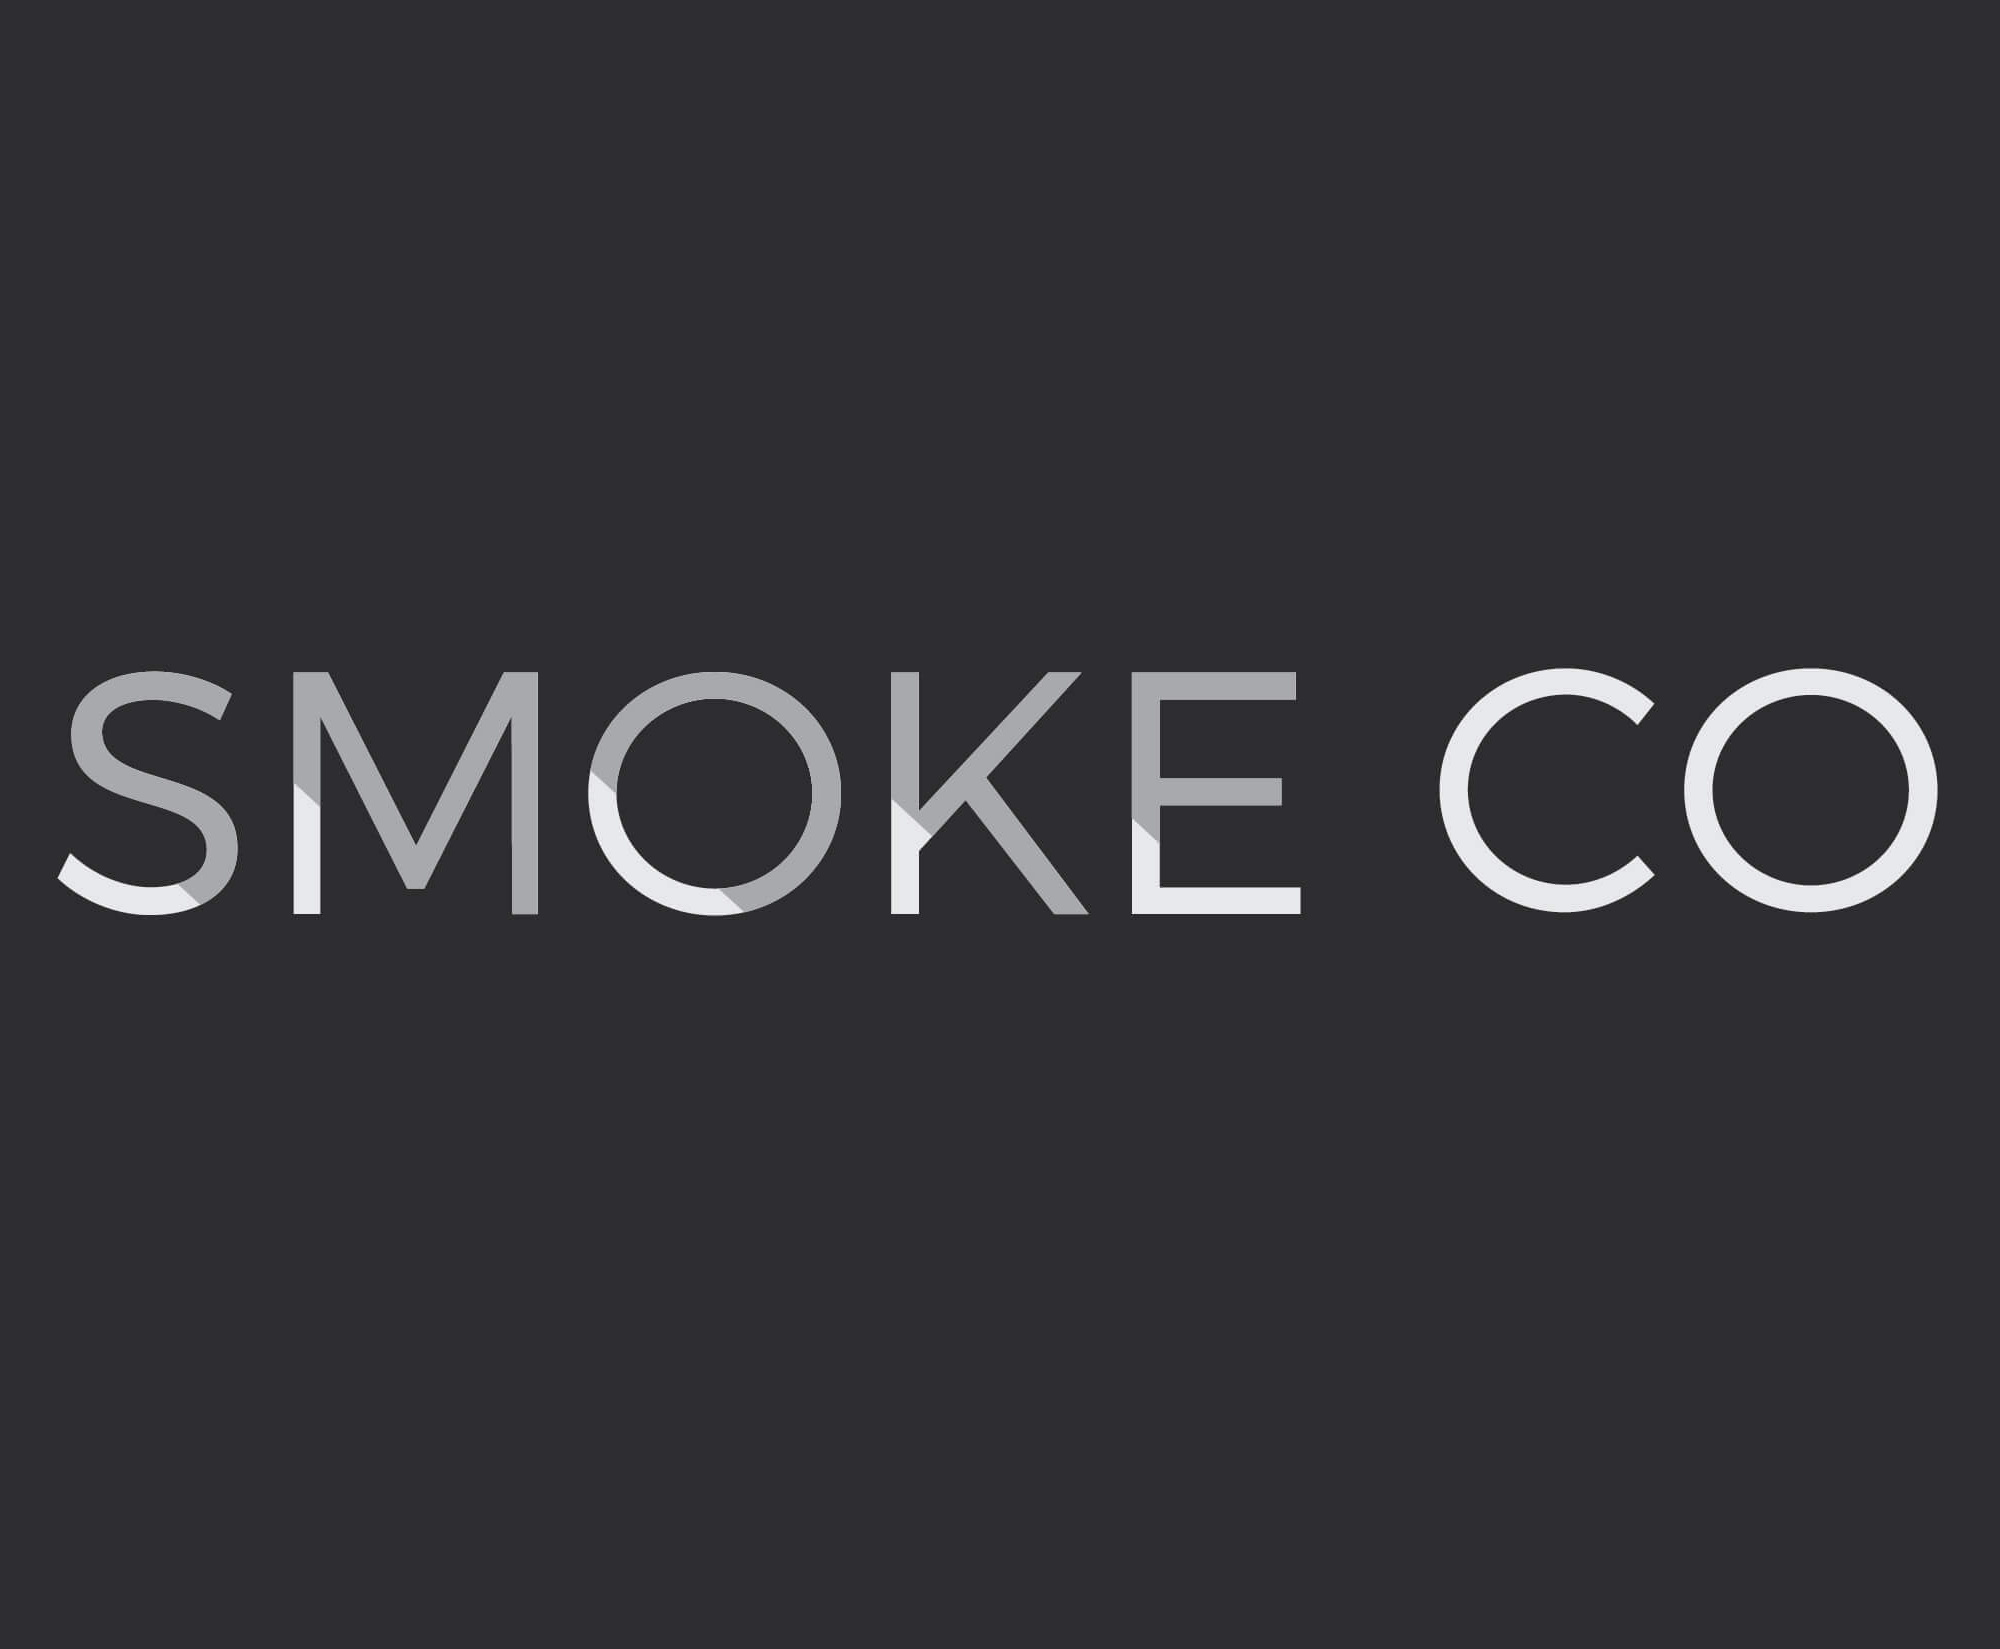 Tony White & Smoke Co